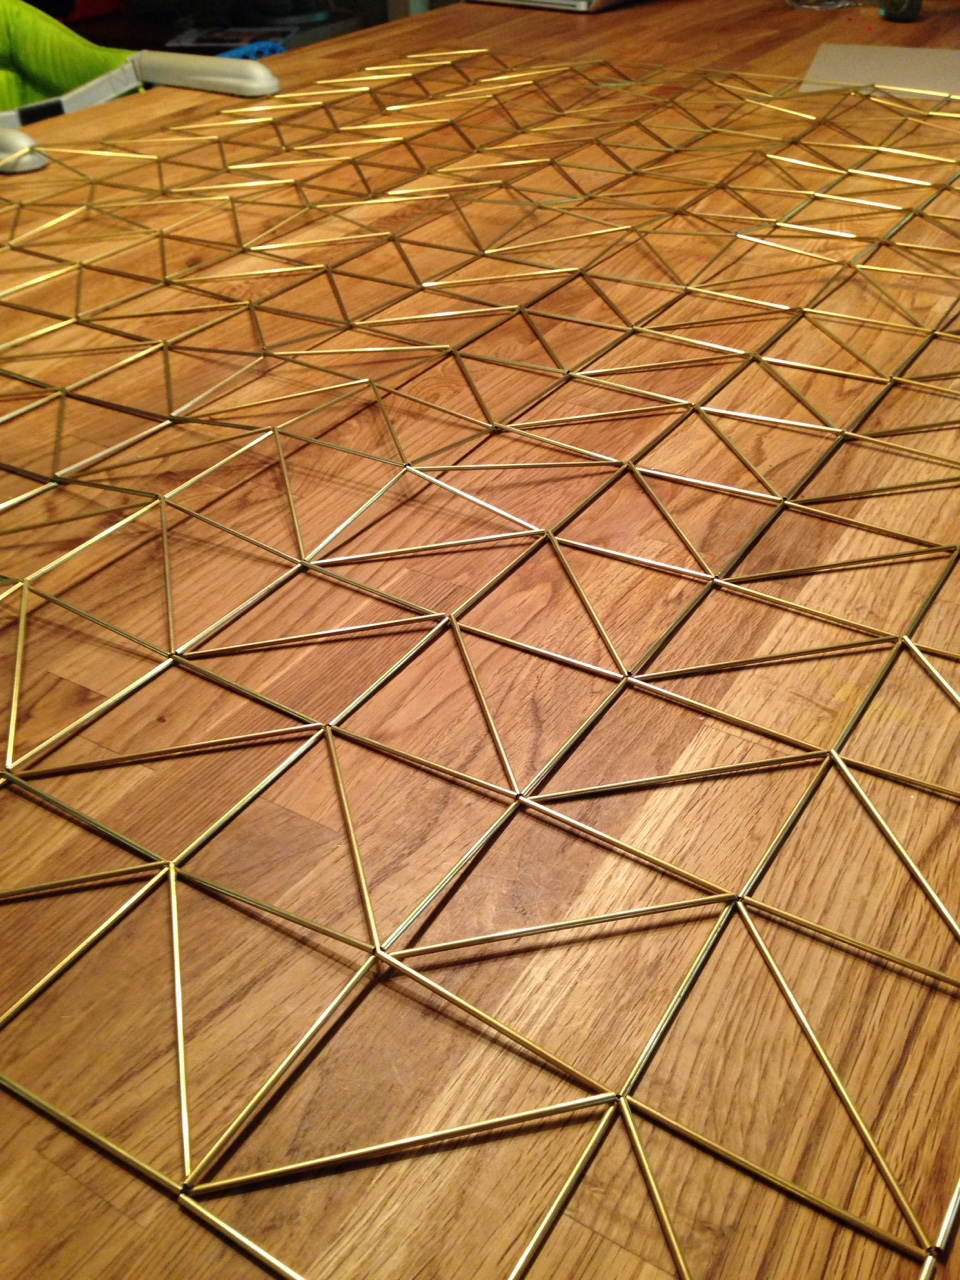 Getting ready to mail a new brass tesselation to friends in NYC.